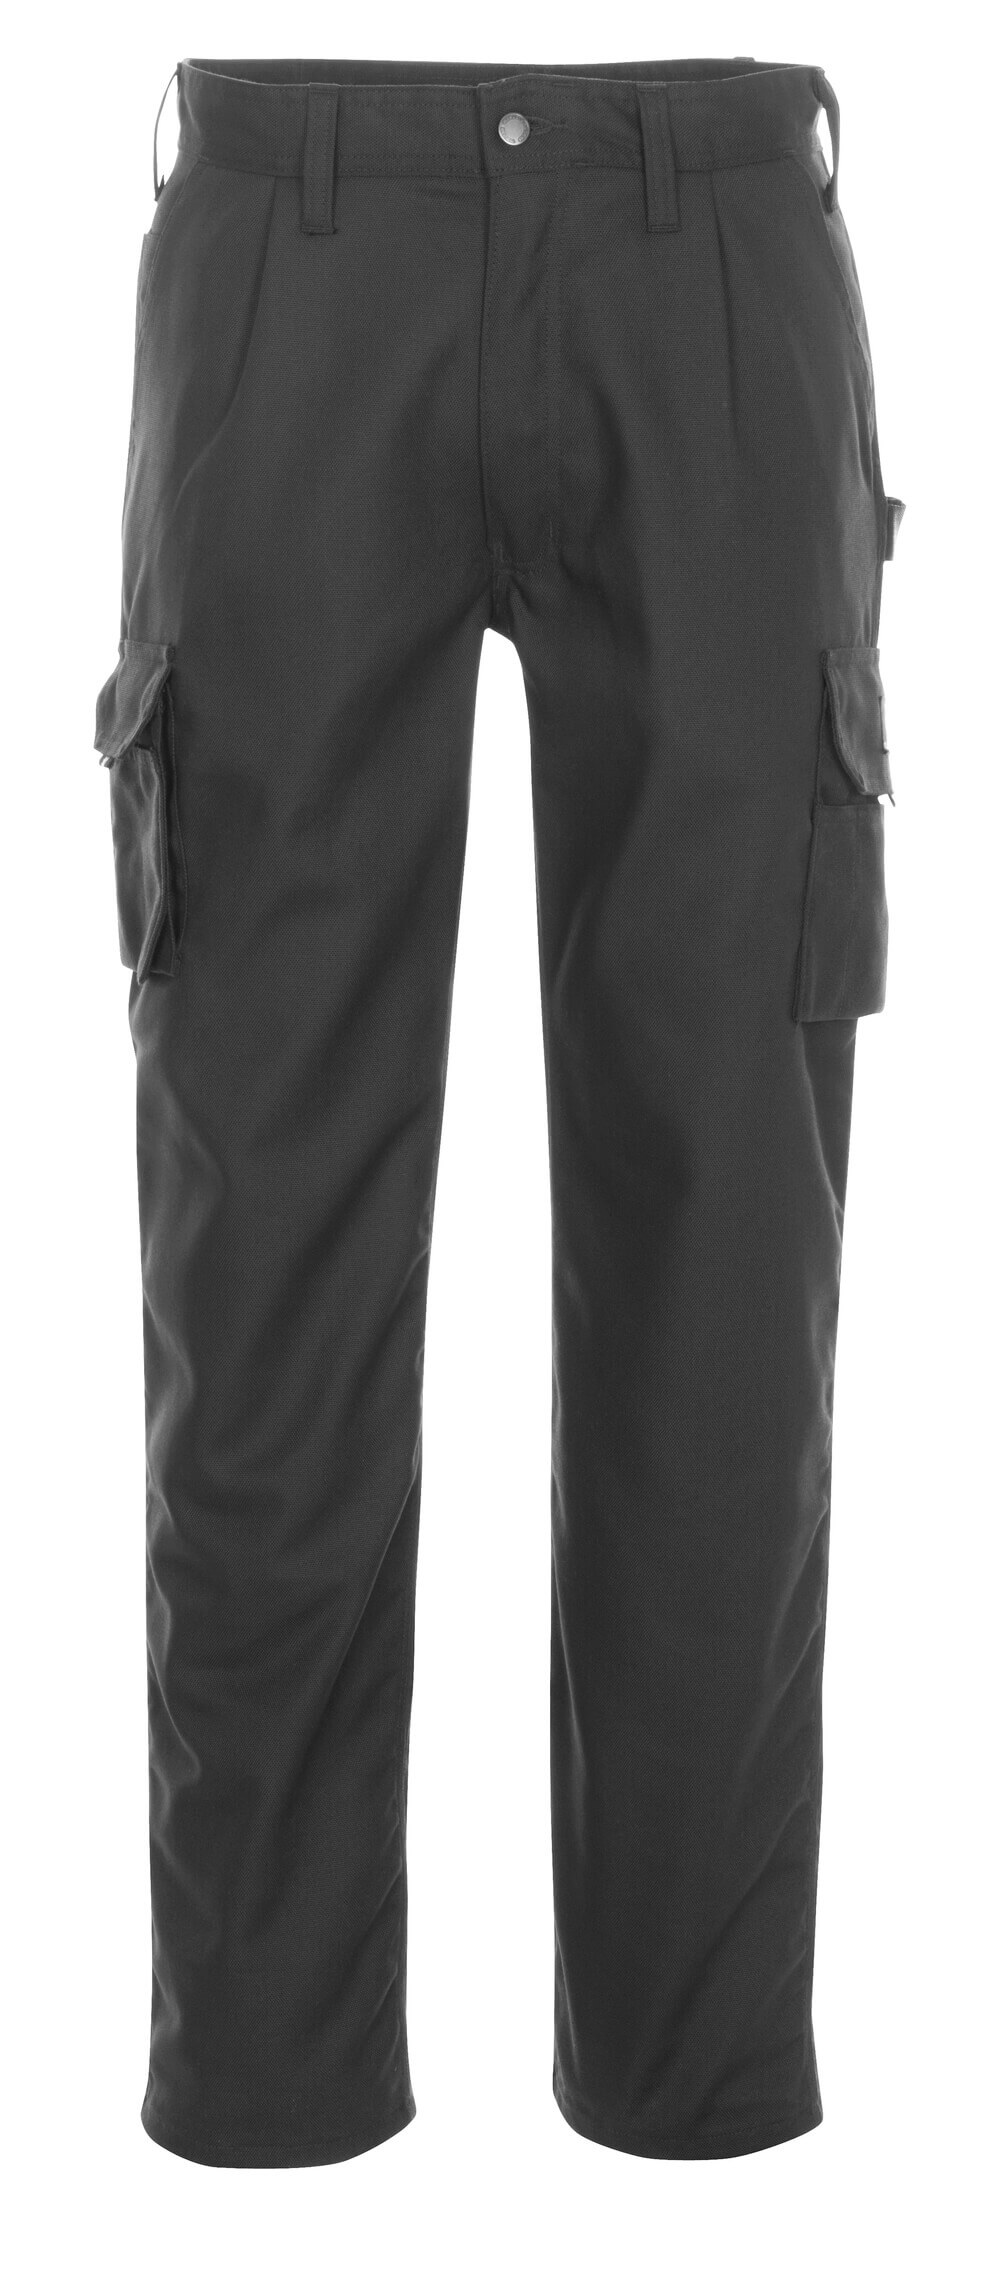 03079-010-09 Pants with thigh pockets - black